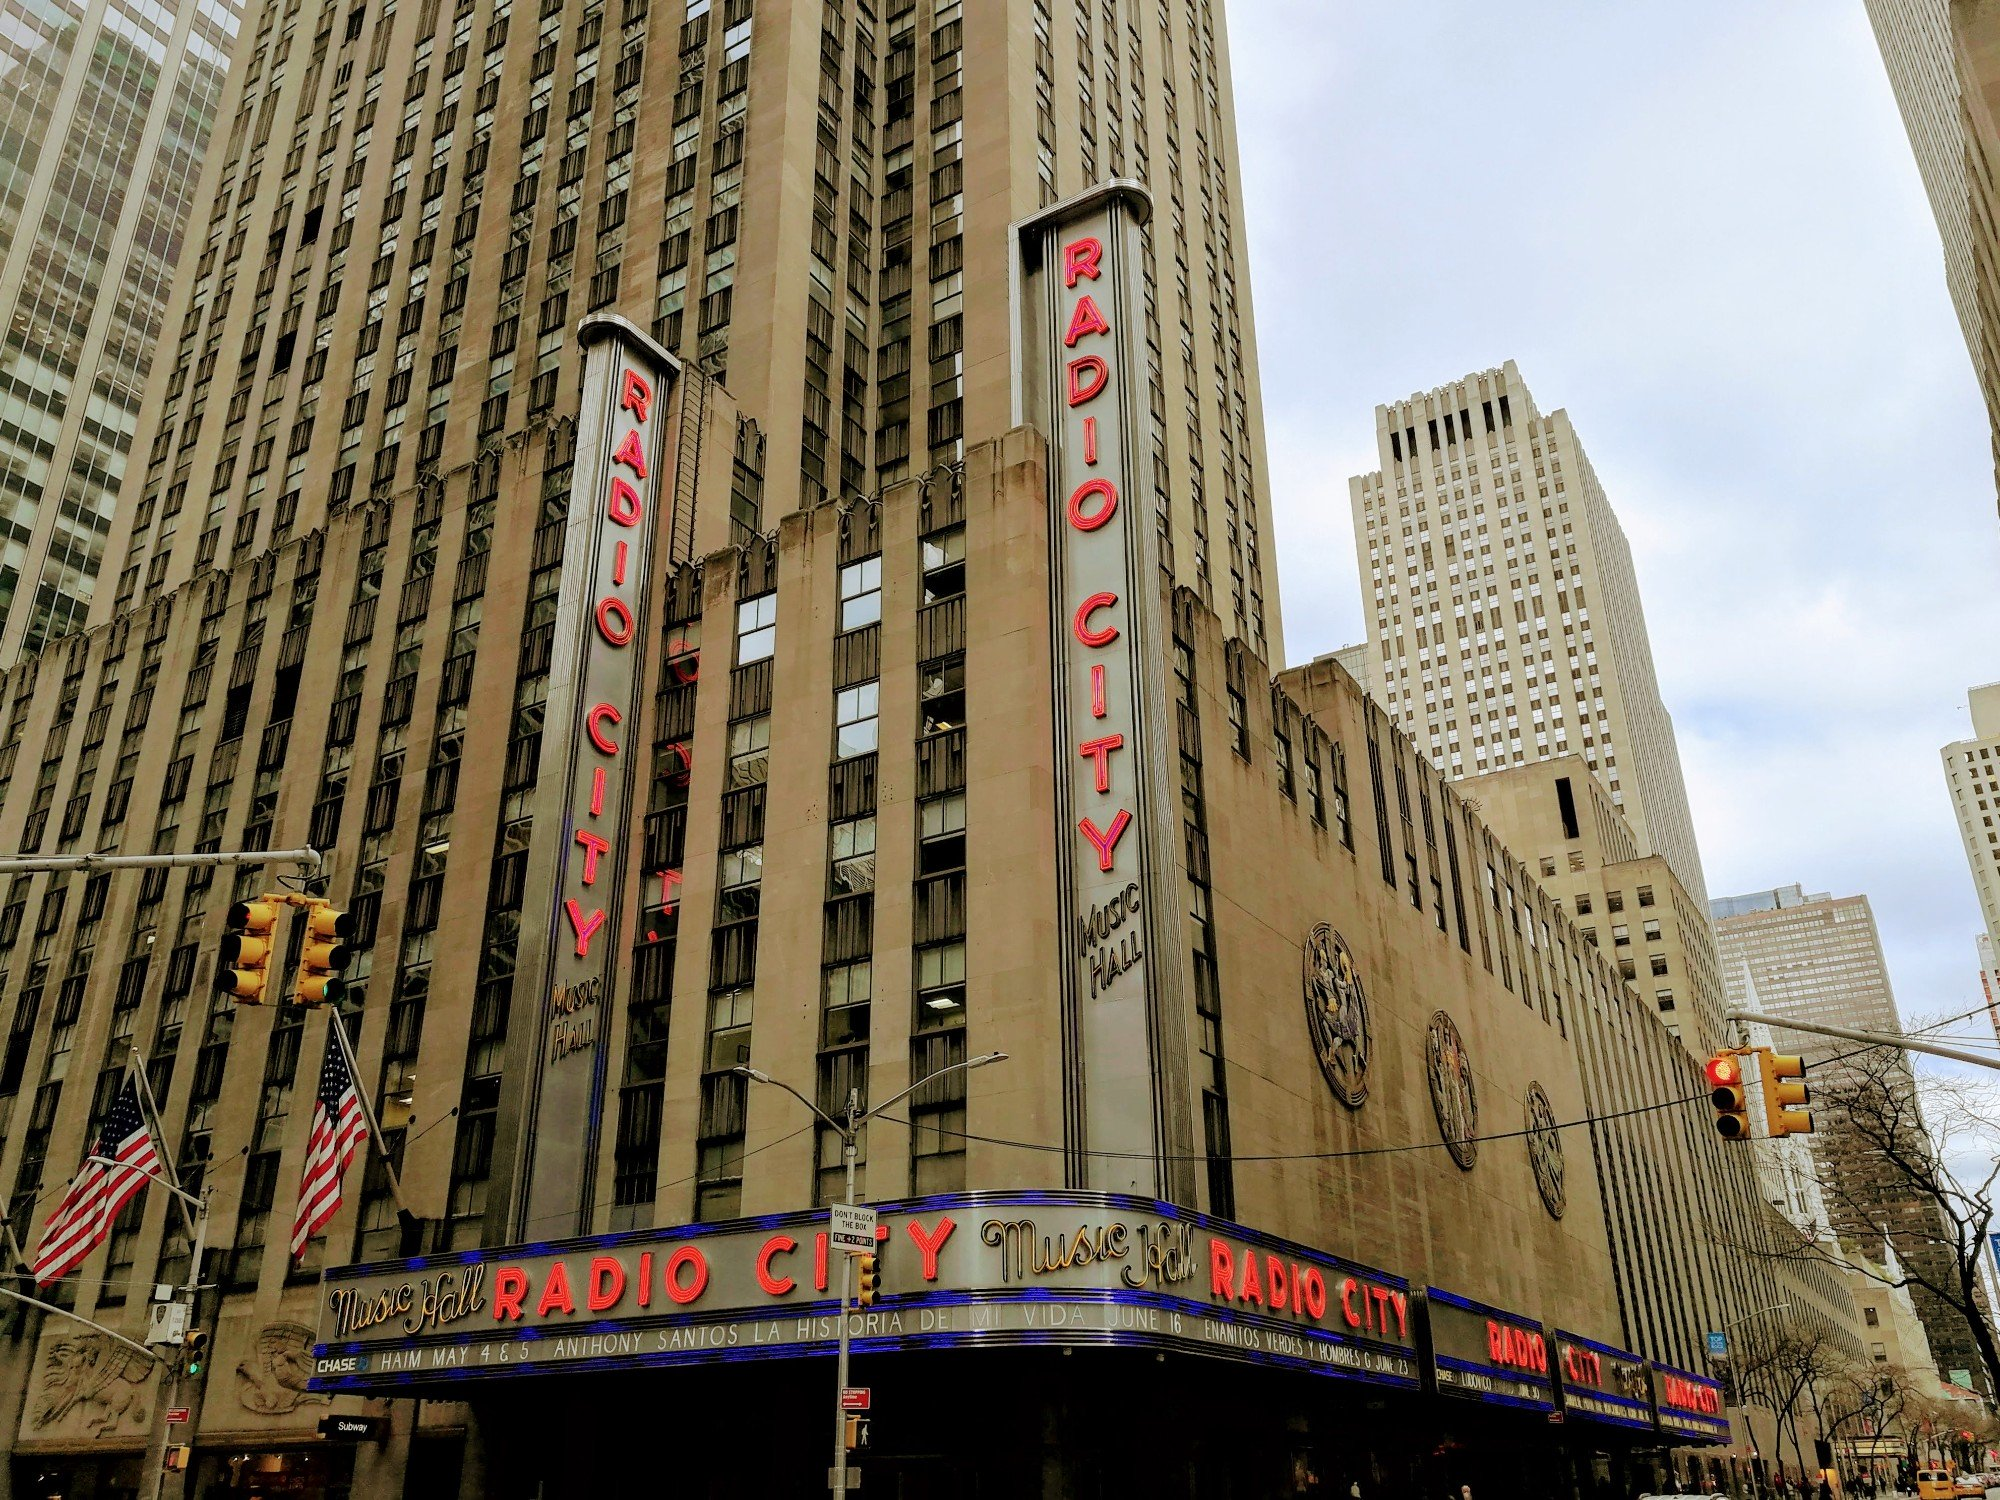 Radio City Music Hall seen from 6th Avenue